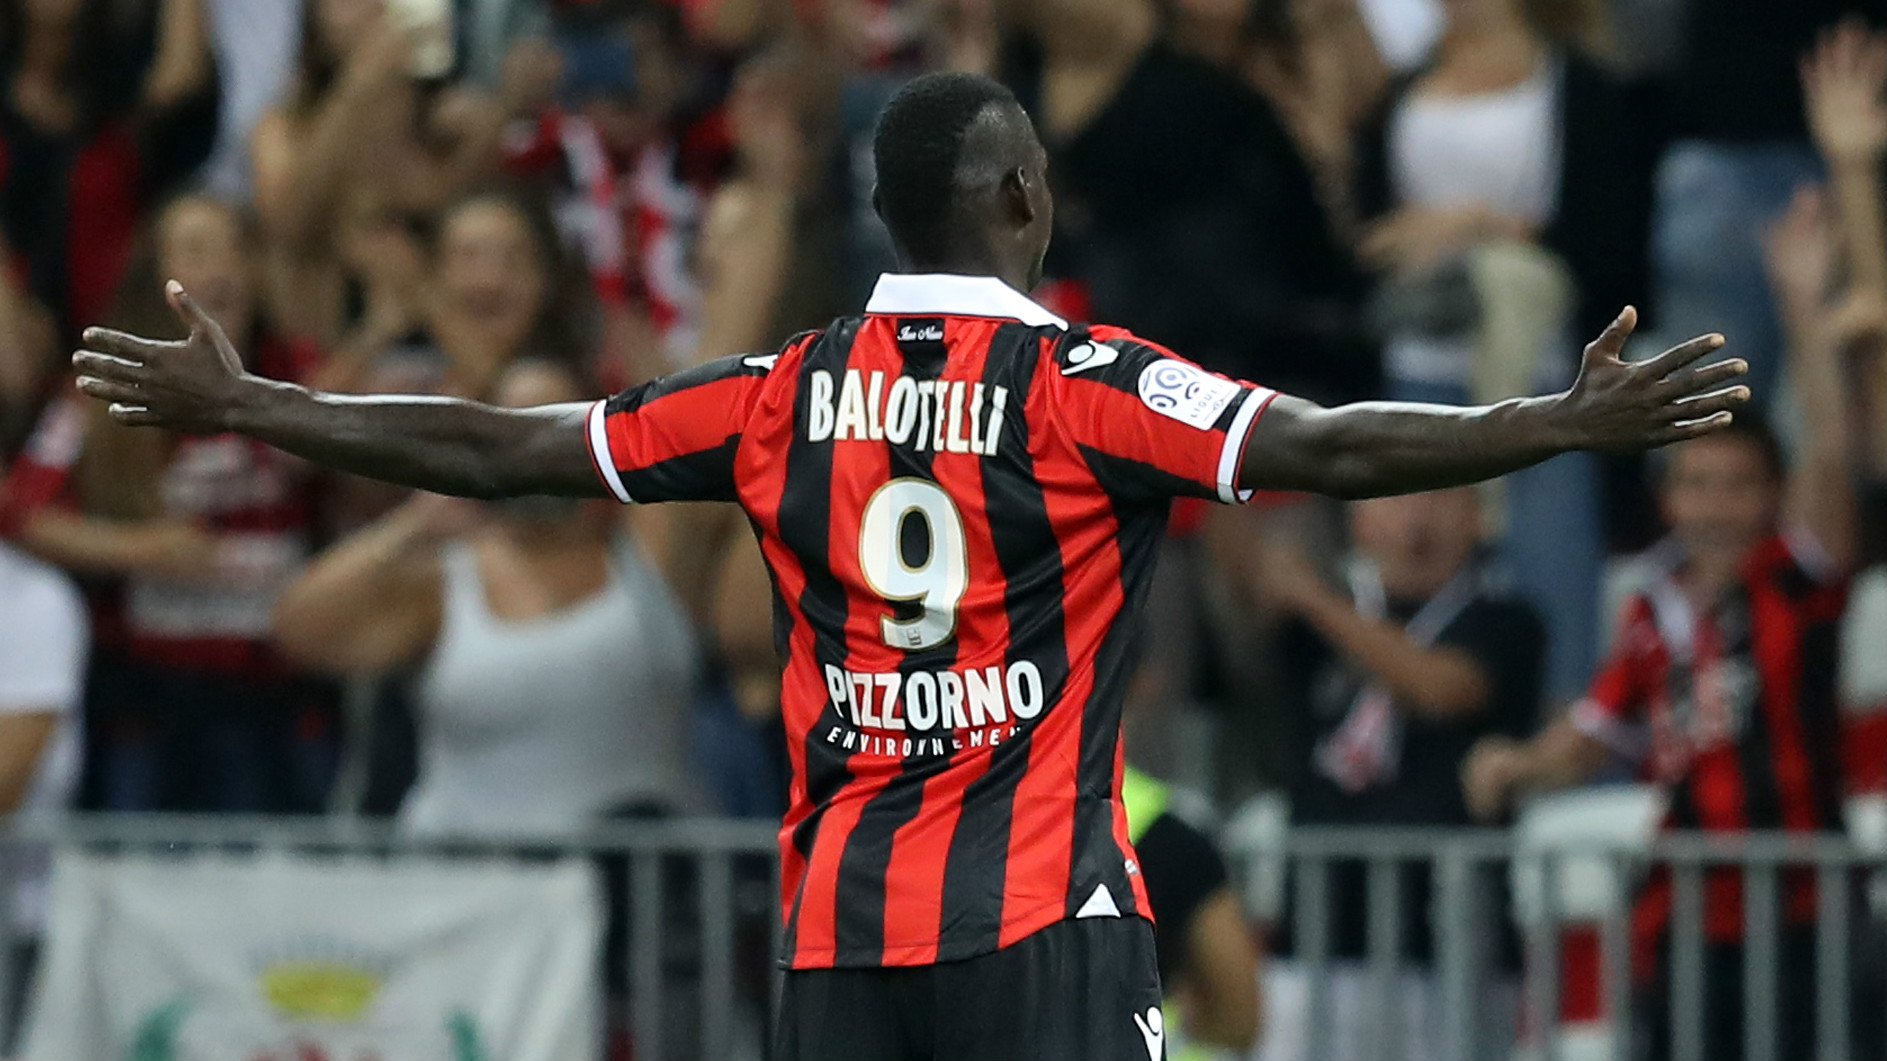 Balotelli Video Gol in Nizza-Marsiglia 3-2: Highlights e Sintesi (Ligue 1 2016-17)